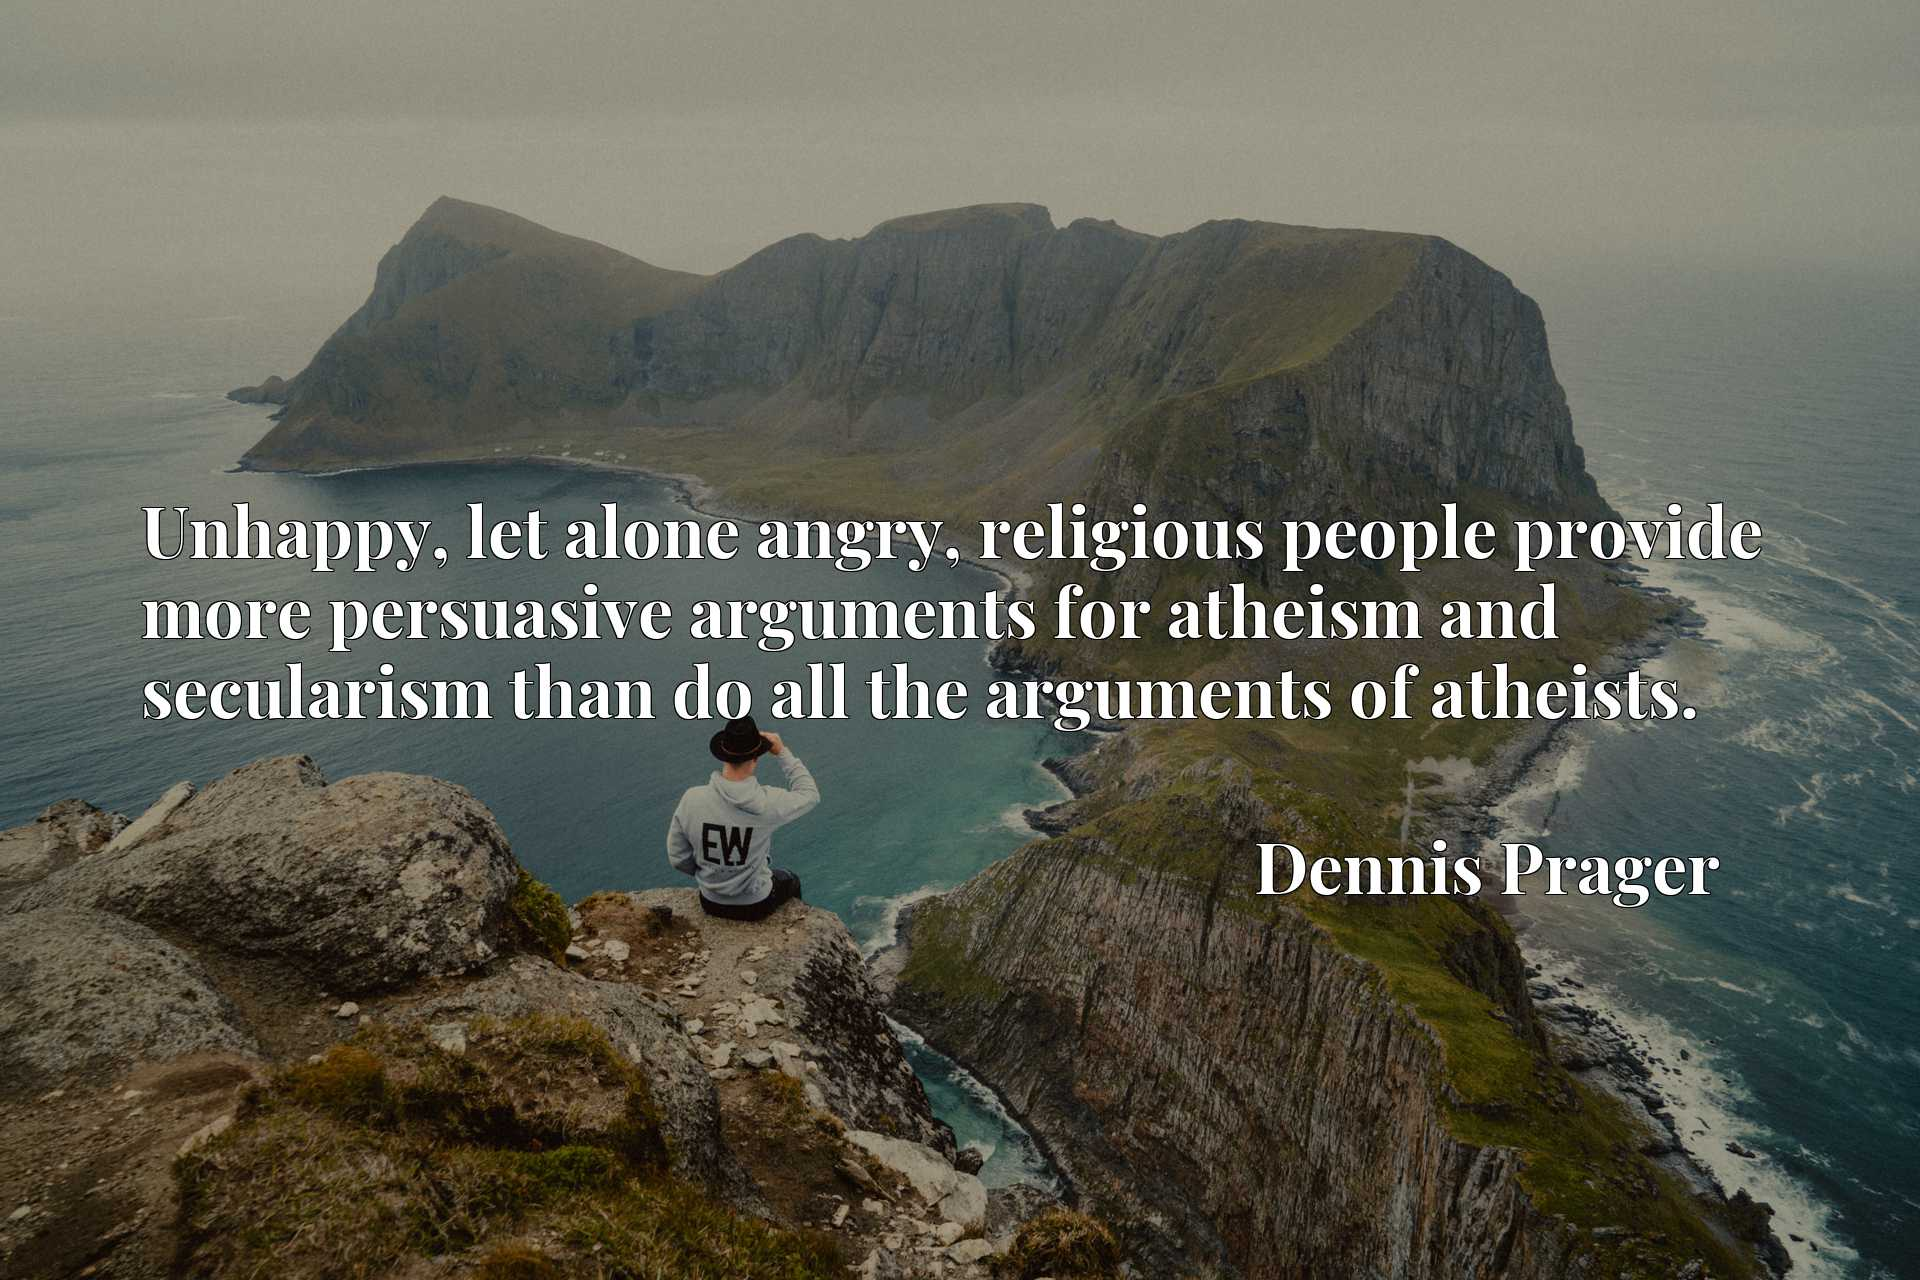 Unhappy, let alone angry, religious people provide more persuasive arguments for atheism and secularism than do all the arguments of atheists.